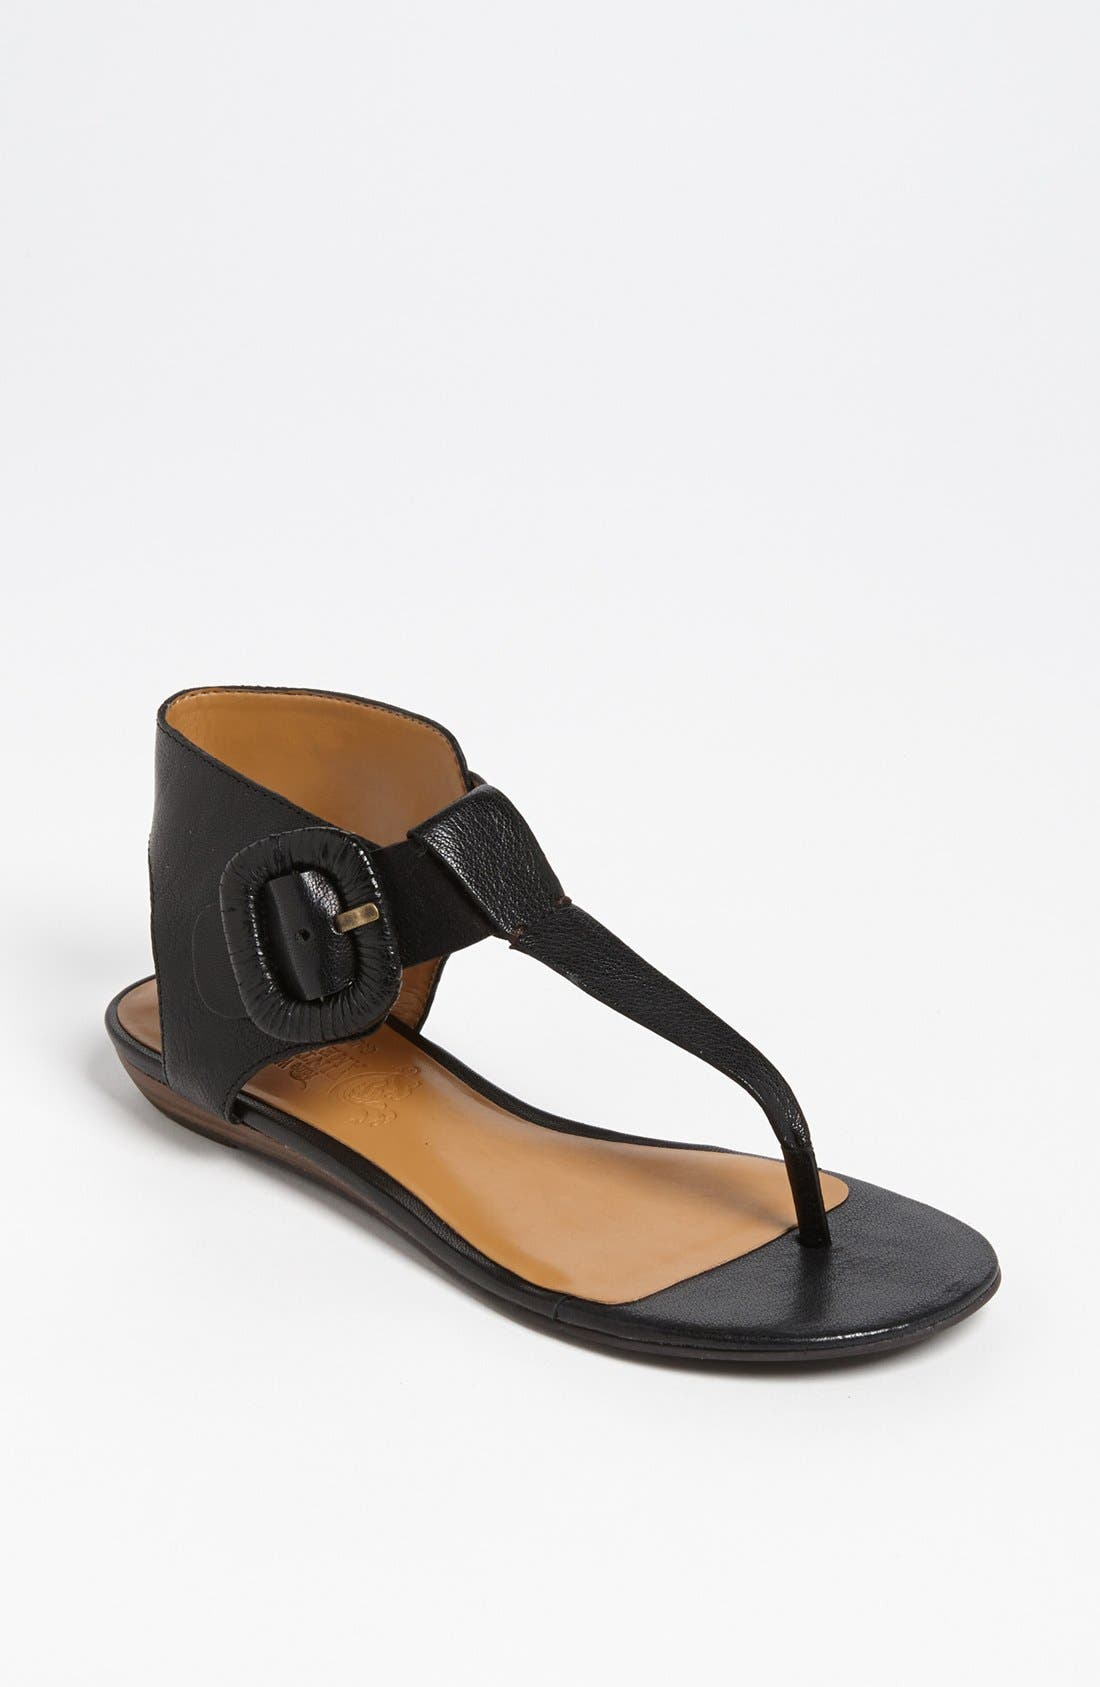 Alternate Image 1 Selected - Nine West 'Wiloh' Sandal & essie® 2013 Spring Collection